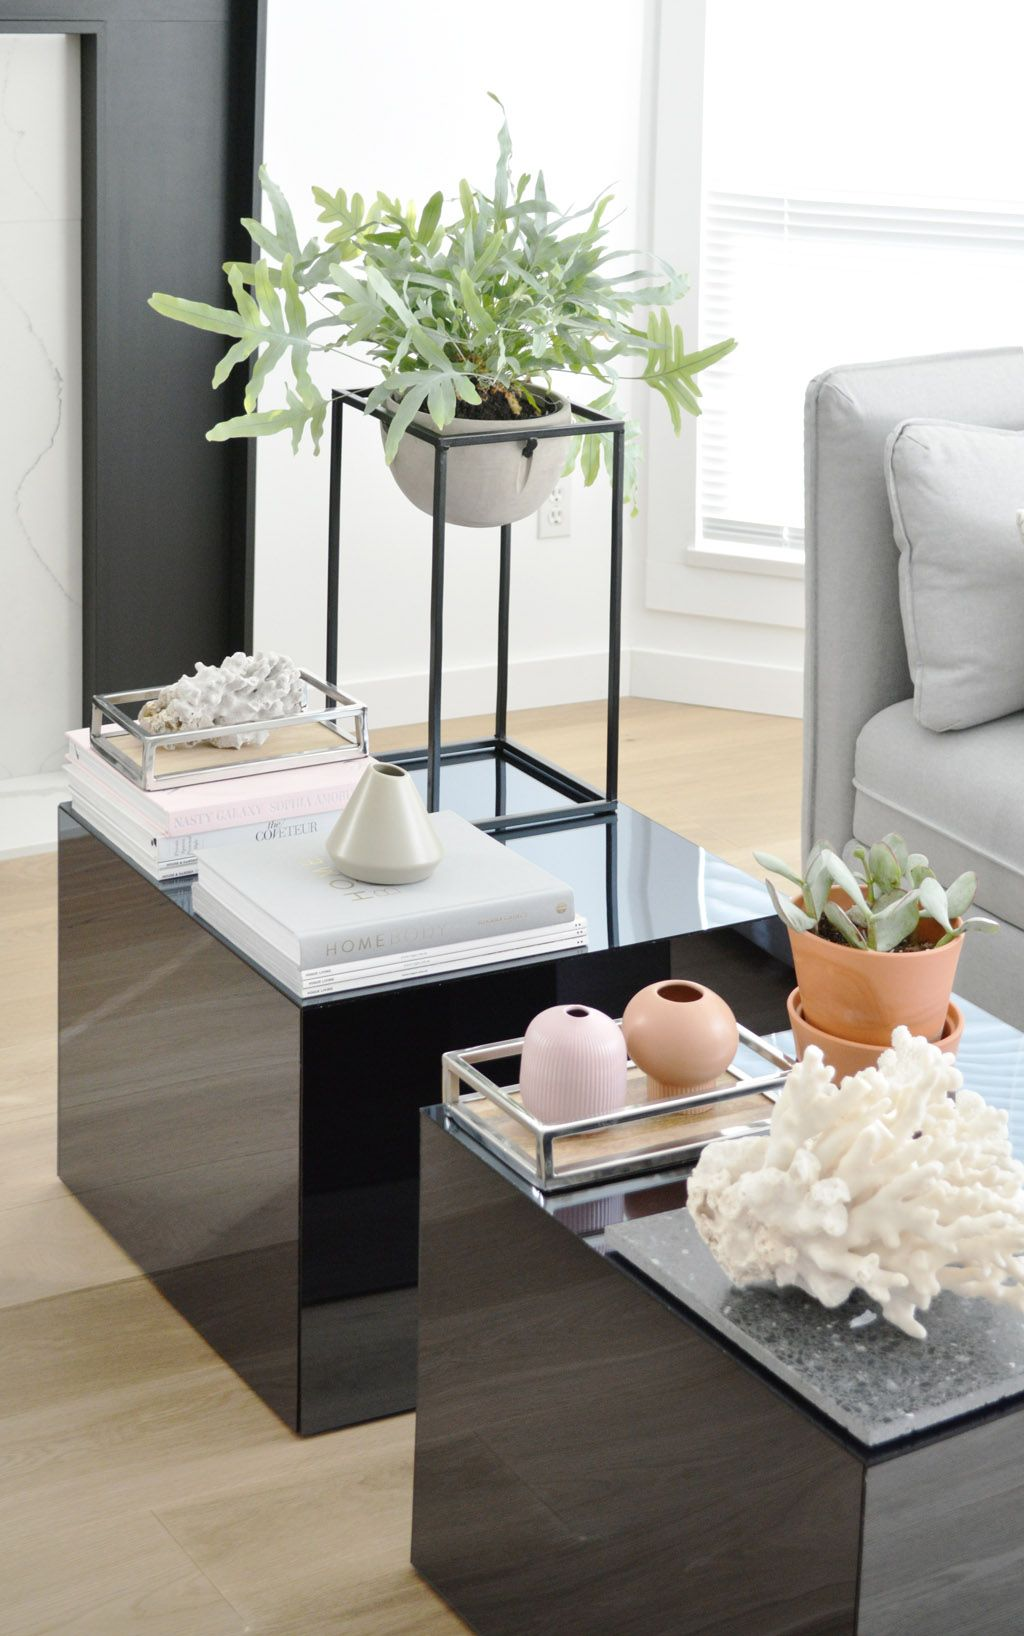 Plexiglas Couchtisch Diy Mirrored Coffee Table Plexiglas Ikea Hack Interior